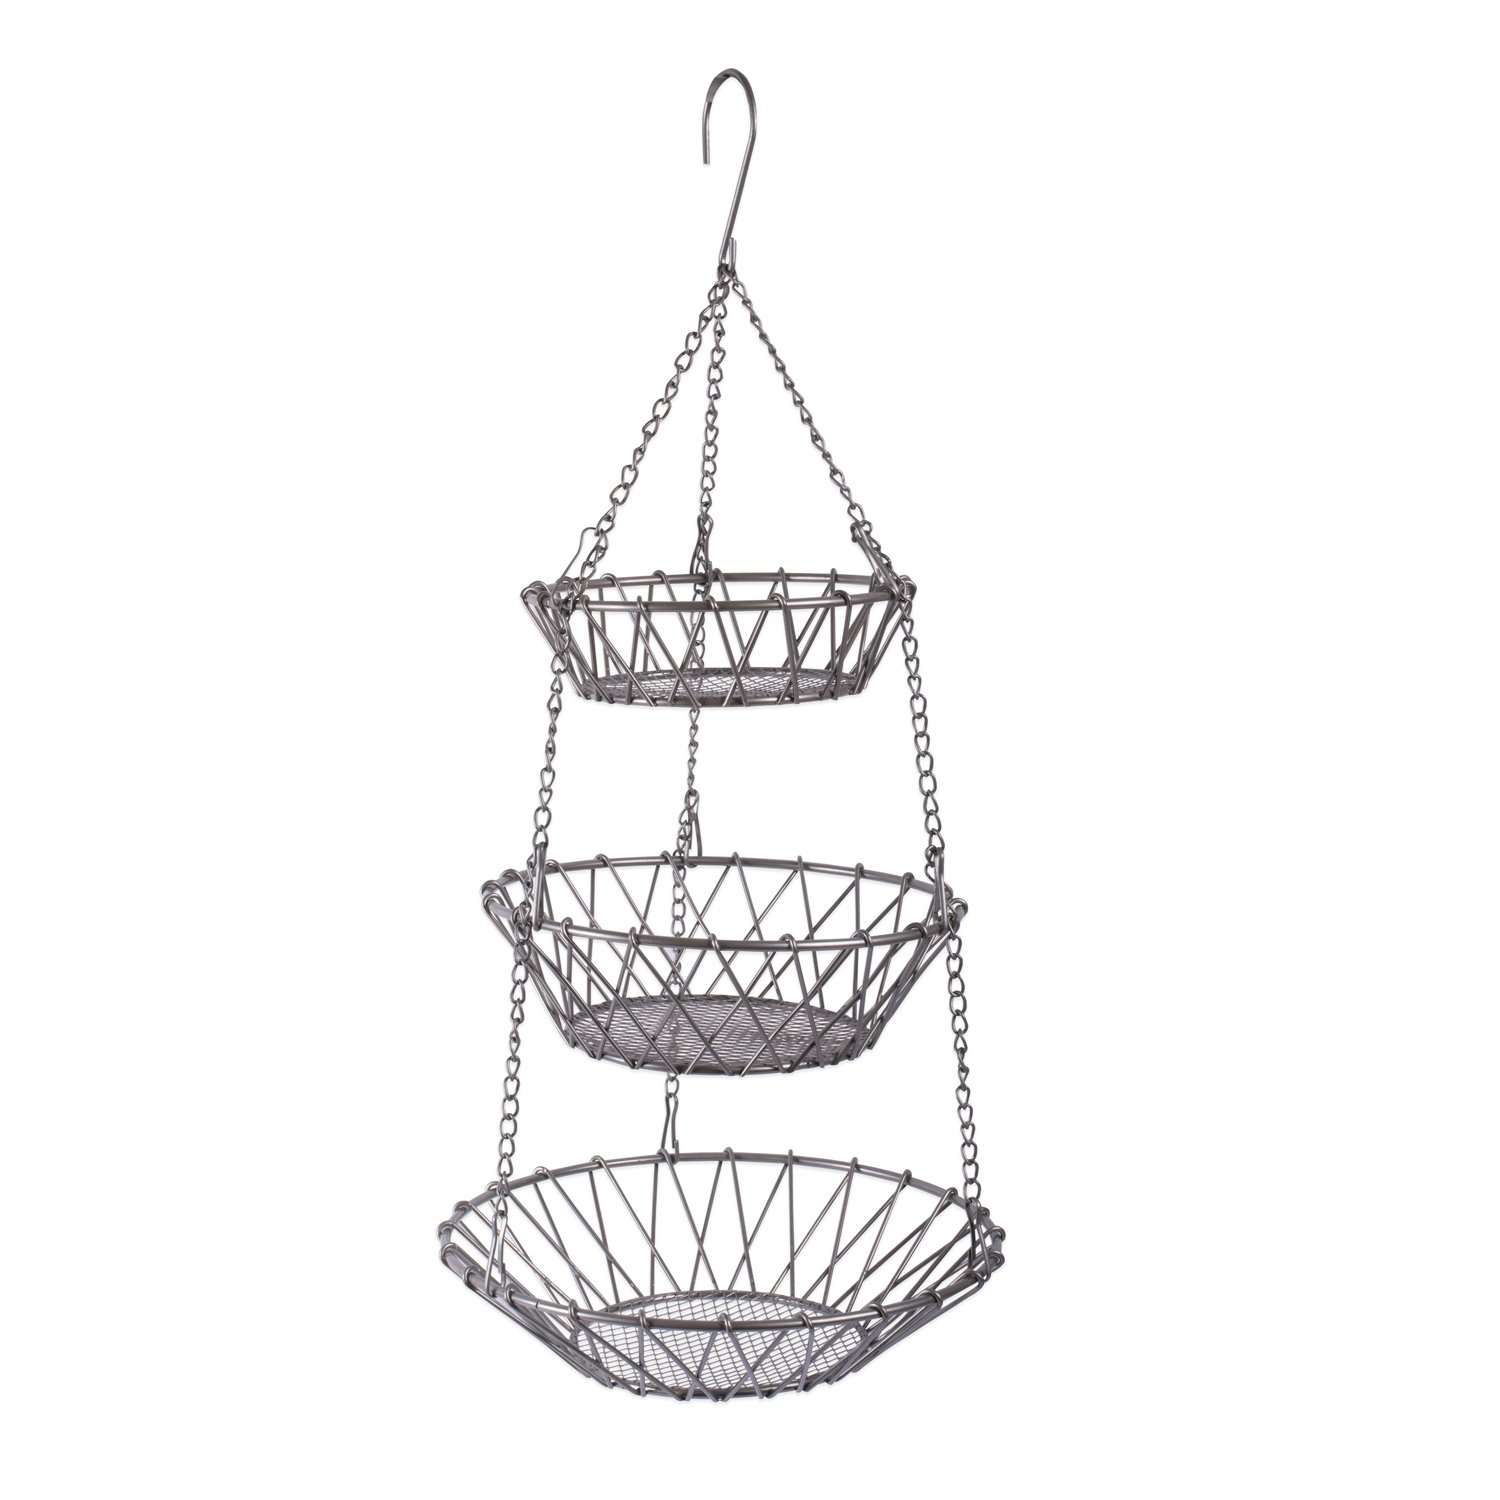 DII CBBB01331 3-Tier Fruit and Vegetable Basket with Sturdy Metal Chain Hanging Hook and Detachable Round Wire Nesting